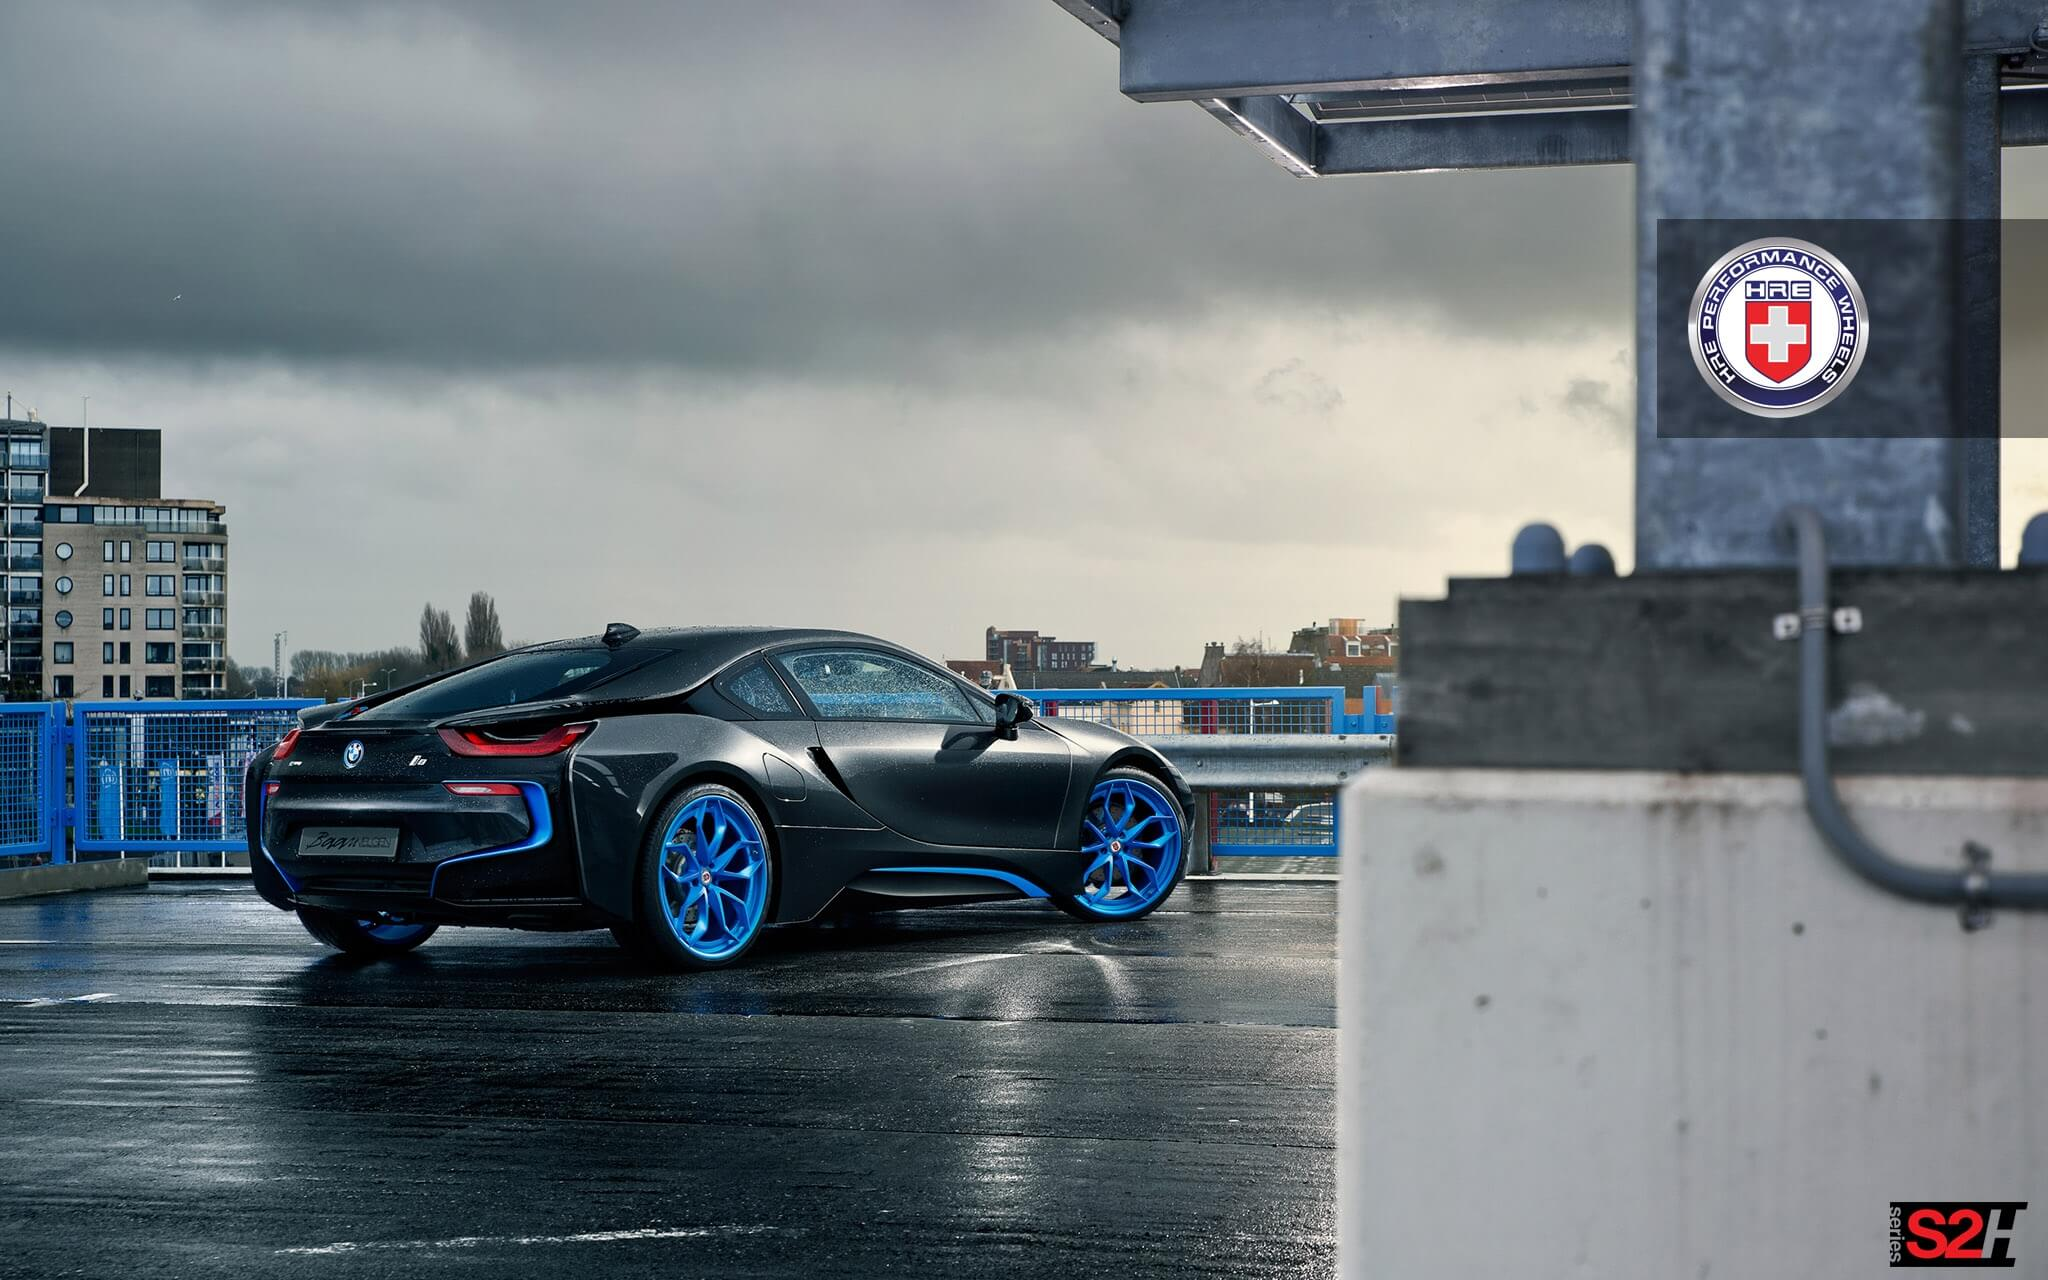 Bmw I8 With Hre S201h In Frozen Ilectric Blue Hre Performance Wheels